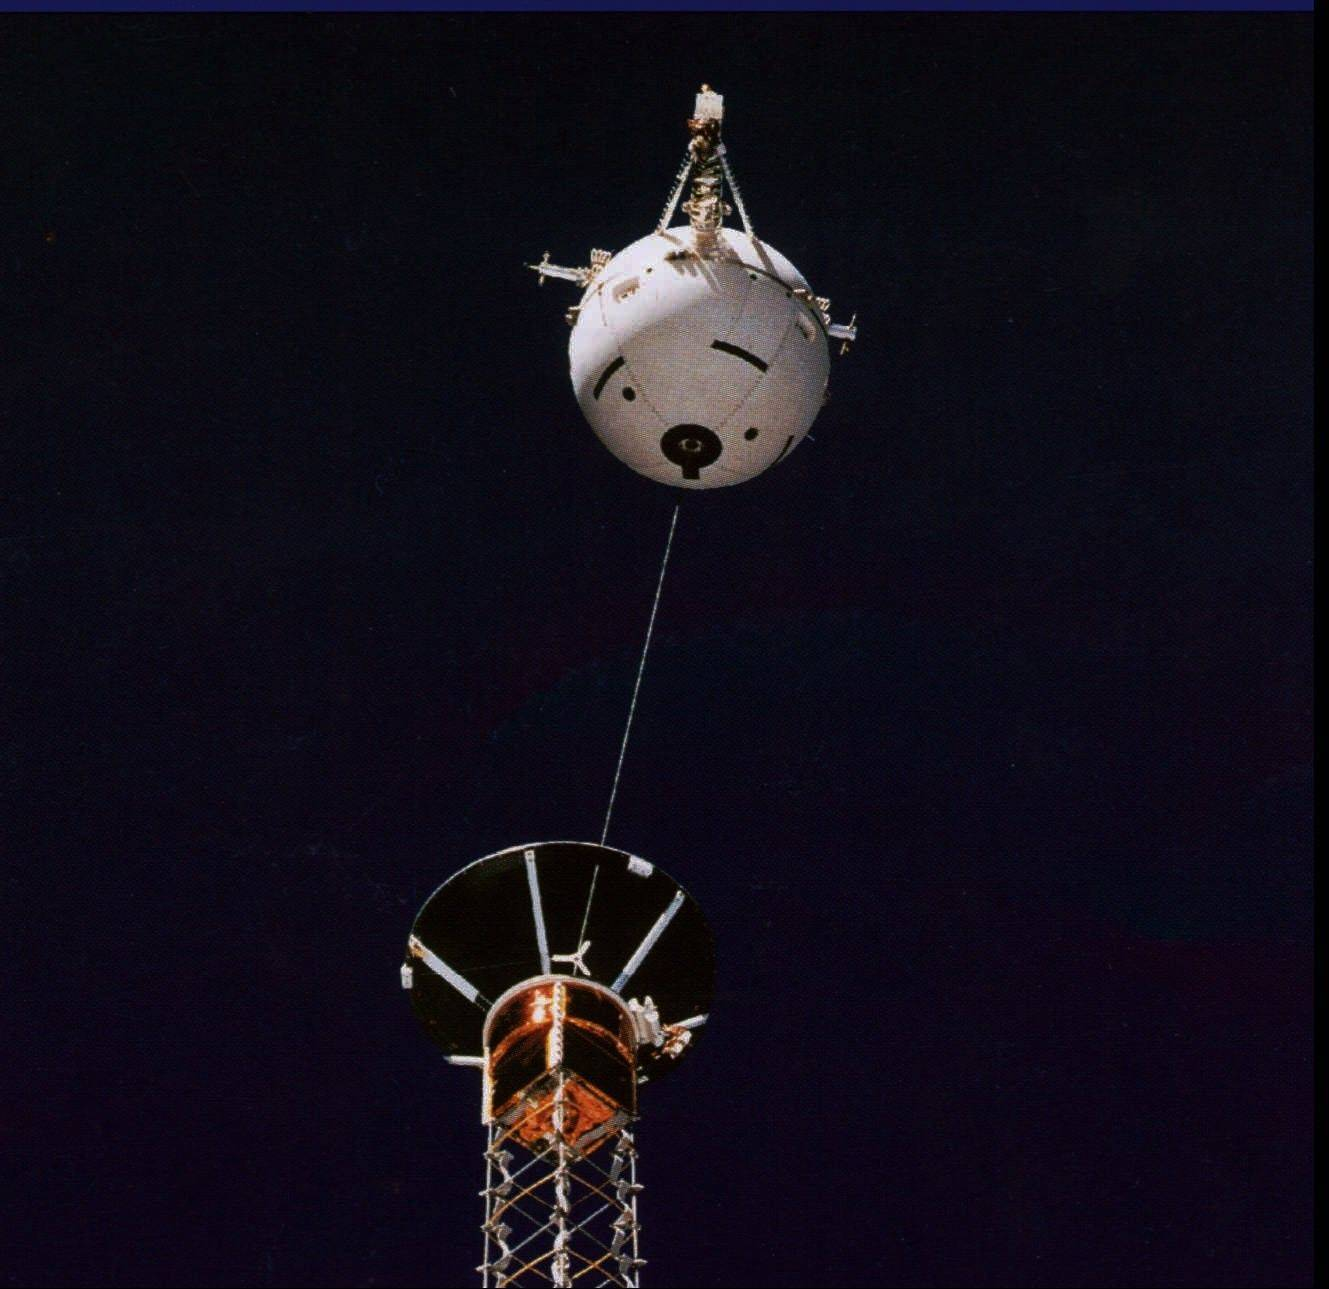 FILE - This July 1992 file picture provided by NASA shows the Tethered Satellite System during an experiment on the space shuttle Atlantis. On Sunday, Feb. 25, 1996, the Italian satellite, which was attached to the space shuttle Columbia, floated off into space after its cable broke.